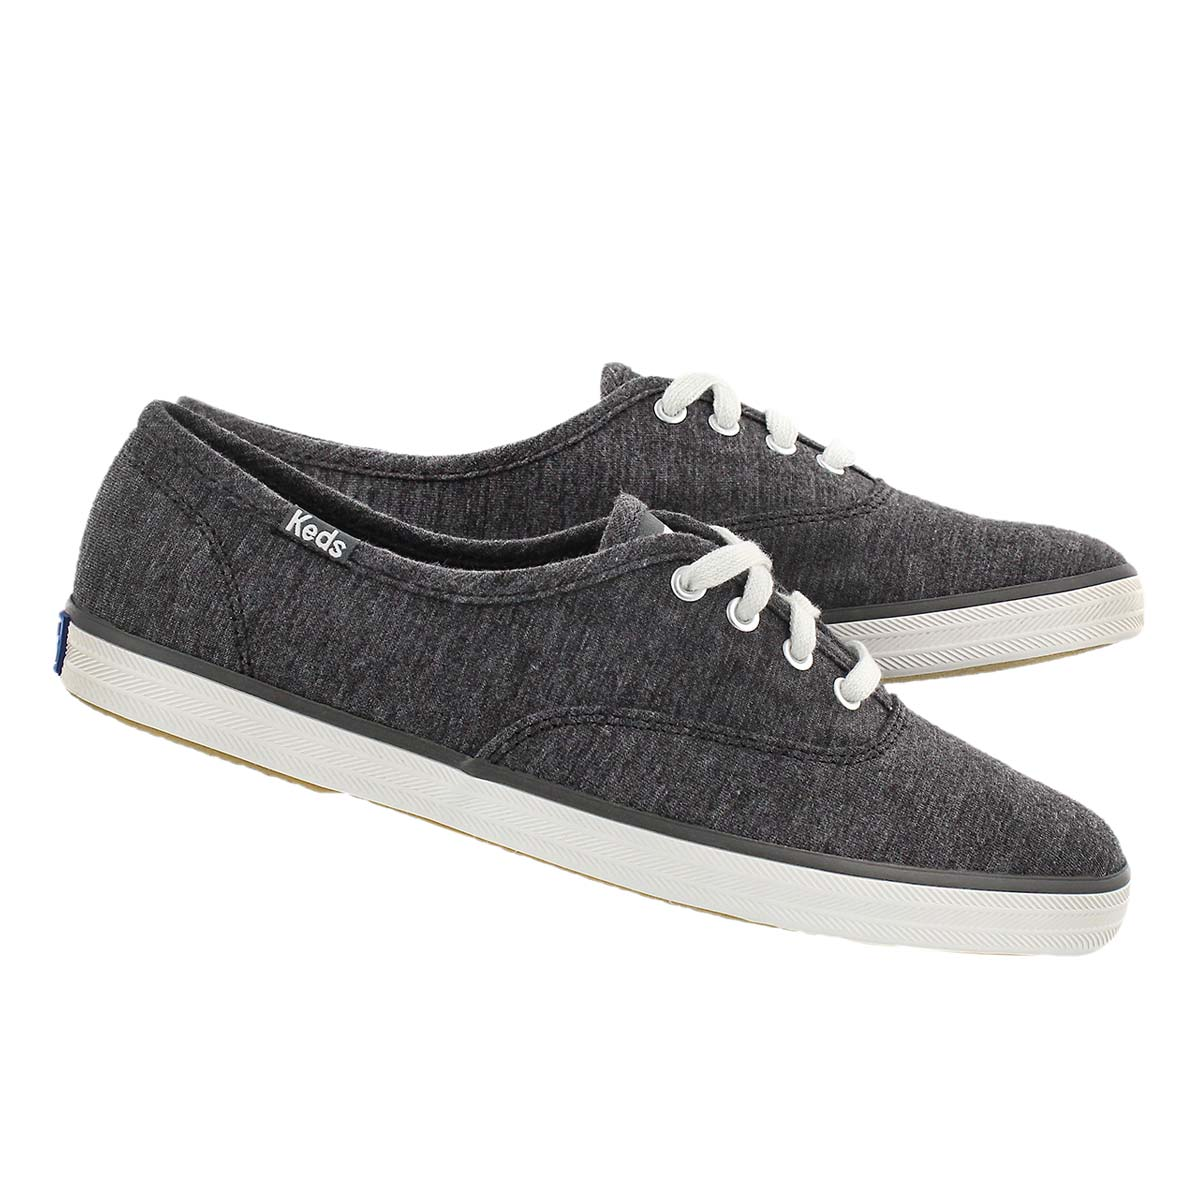 Lds Champion Jersey graphite sneaker